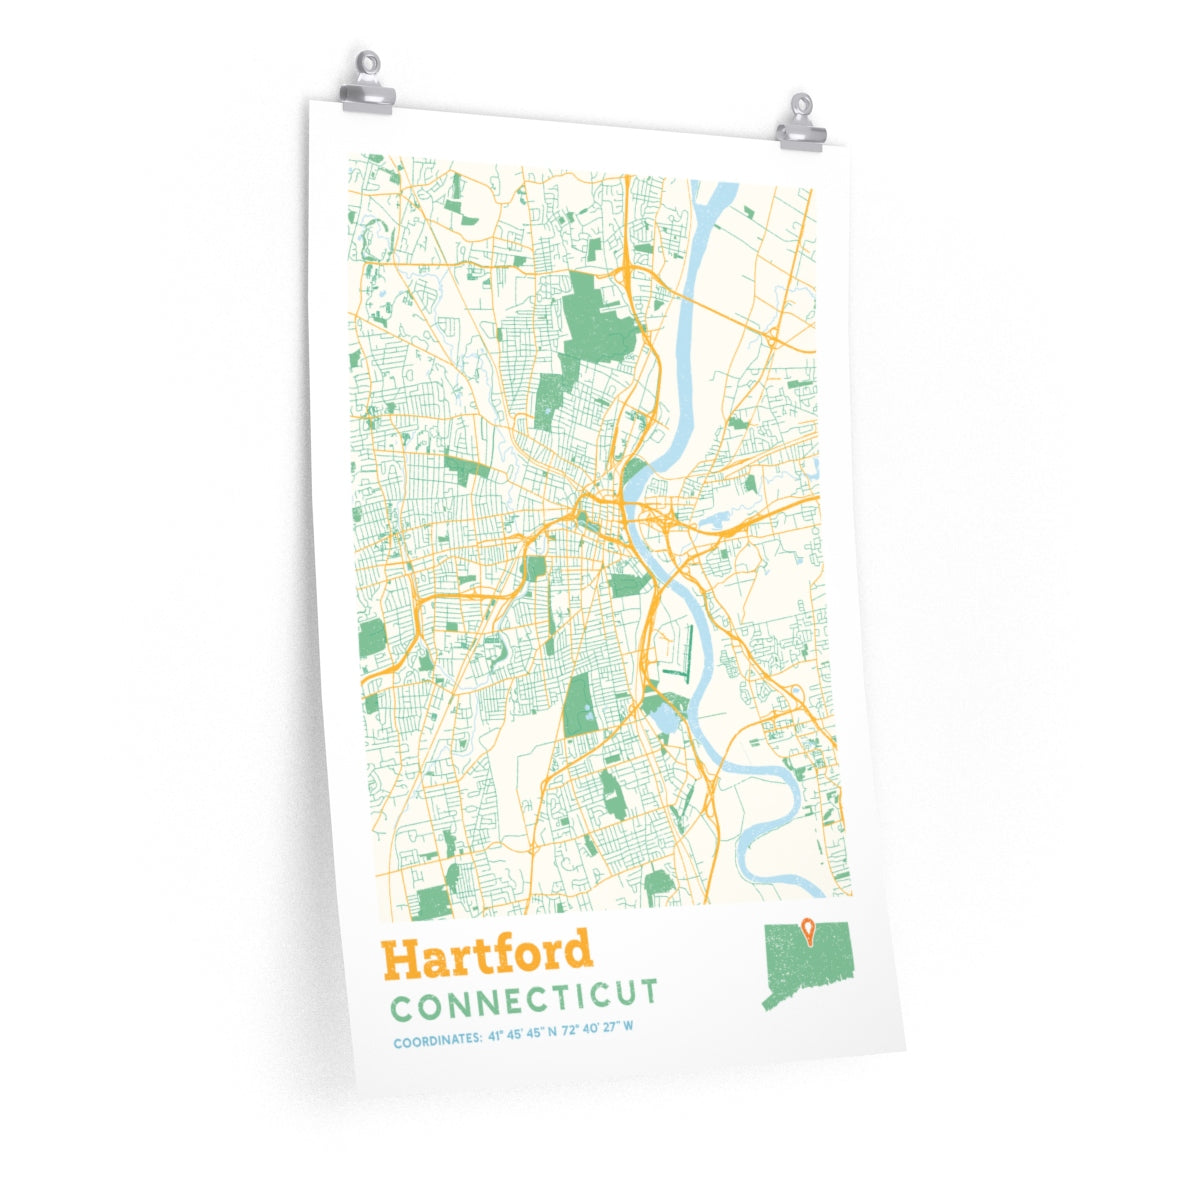 Hartford Connecticut City Street Map Poster